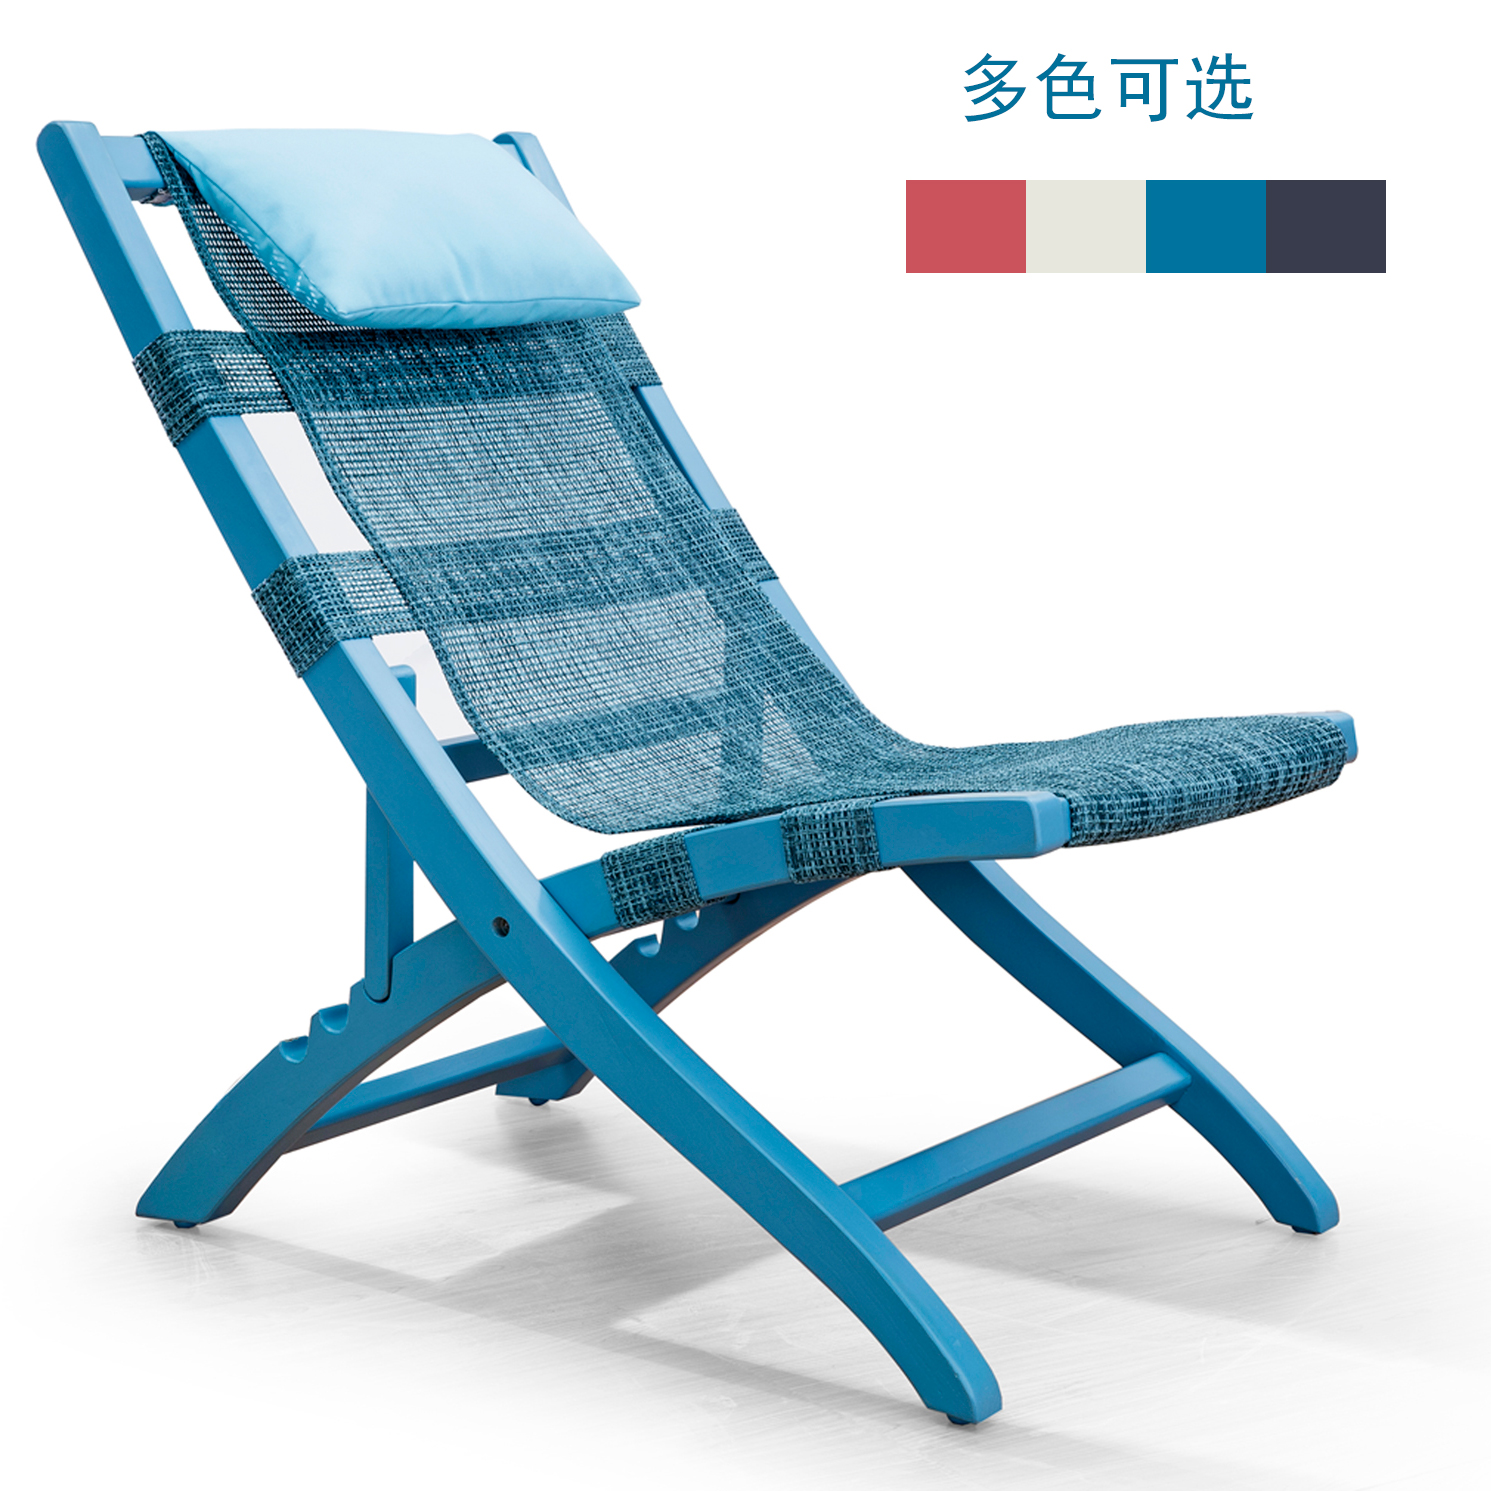 Solid Wood Bedroom Chaise Lounge Chairs Wooden Folding Outdoor Balcony Shrink Cloth Recliner Recliner Leather Sofa Set Recliner Chair Mechanismchair Director Aliexpress